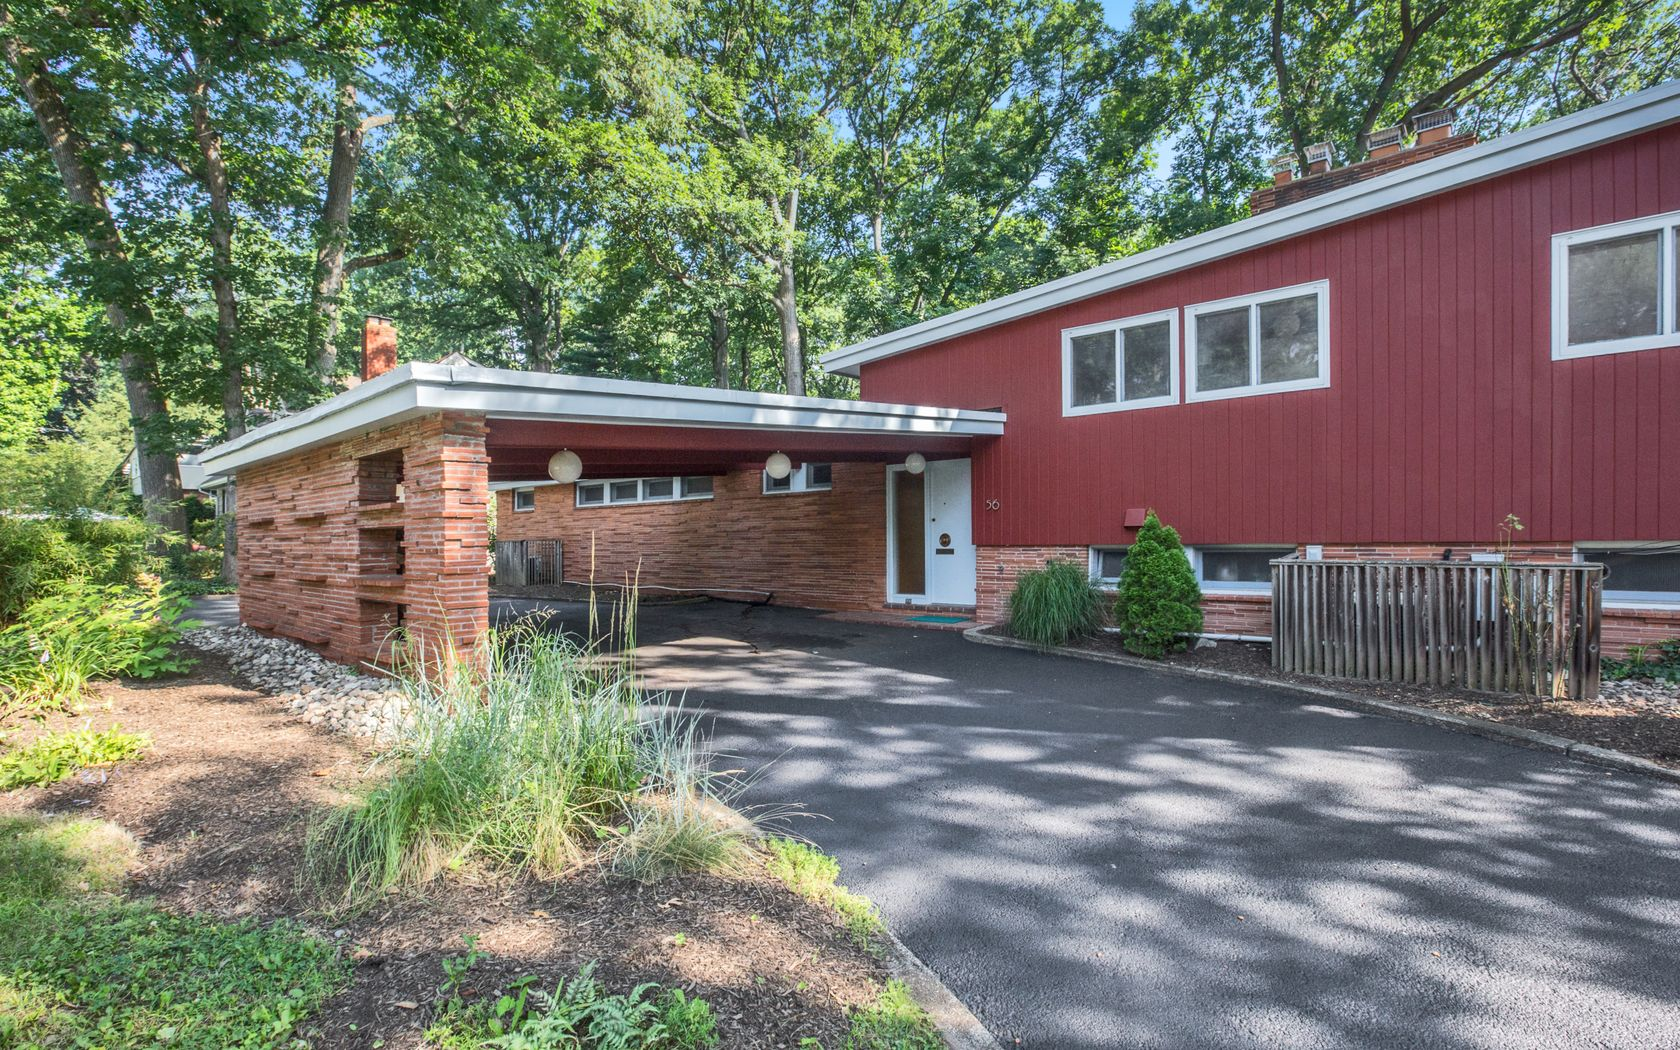 updated midcentury home with cork flooring asks 719k curbed measuring 2 700 square feet the split level home features a dynamic layout that includes an open plan living area with a massive brick fireplace and